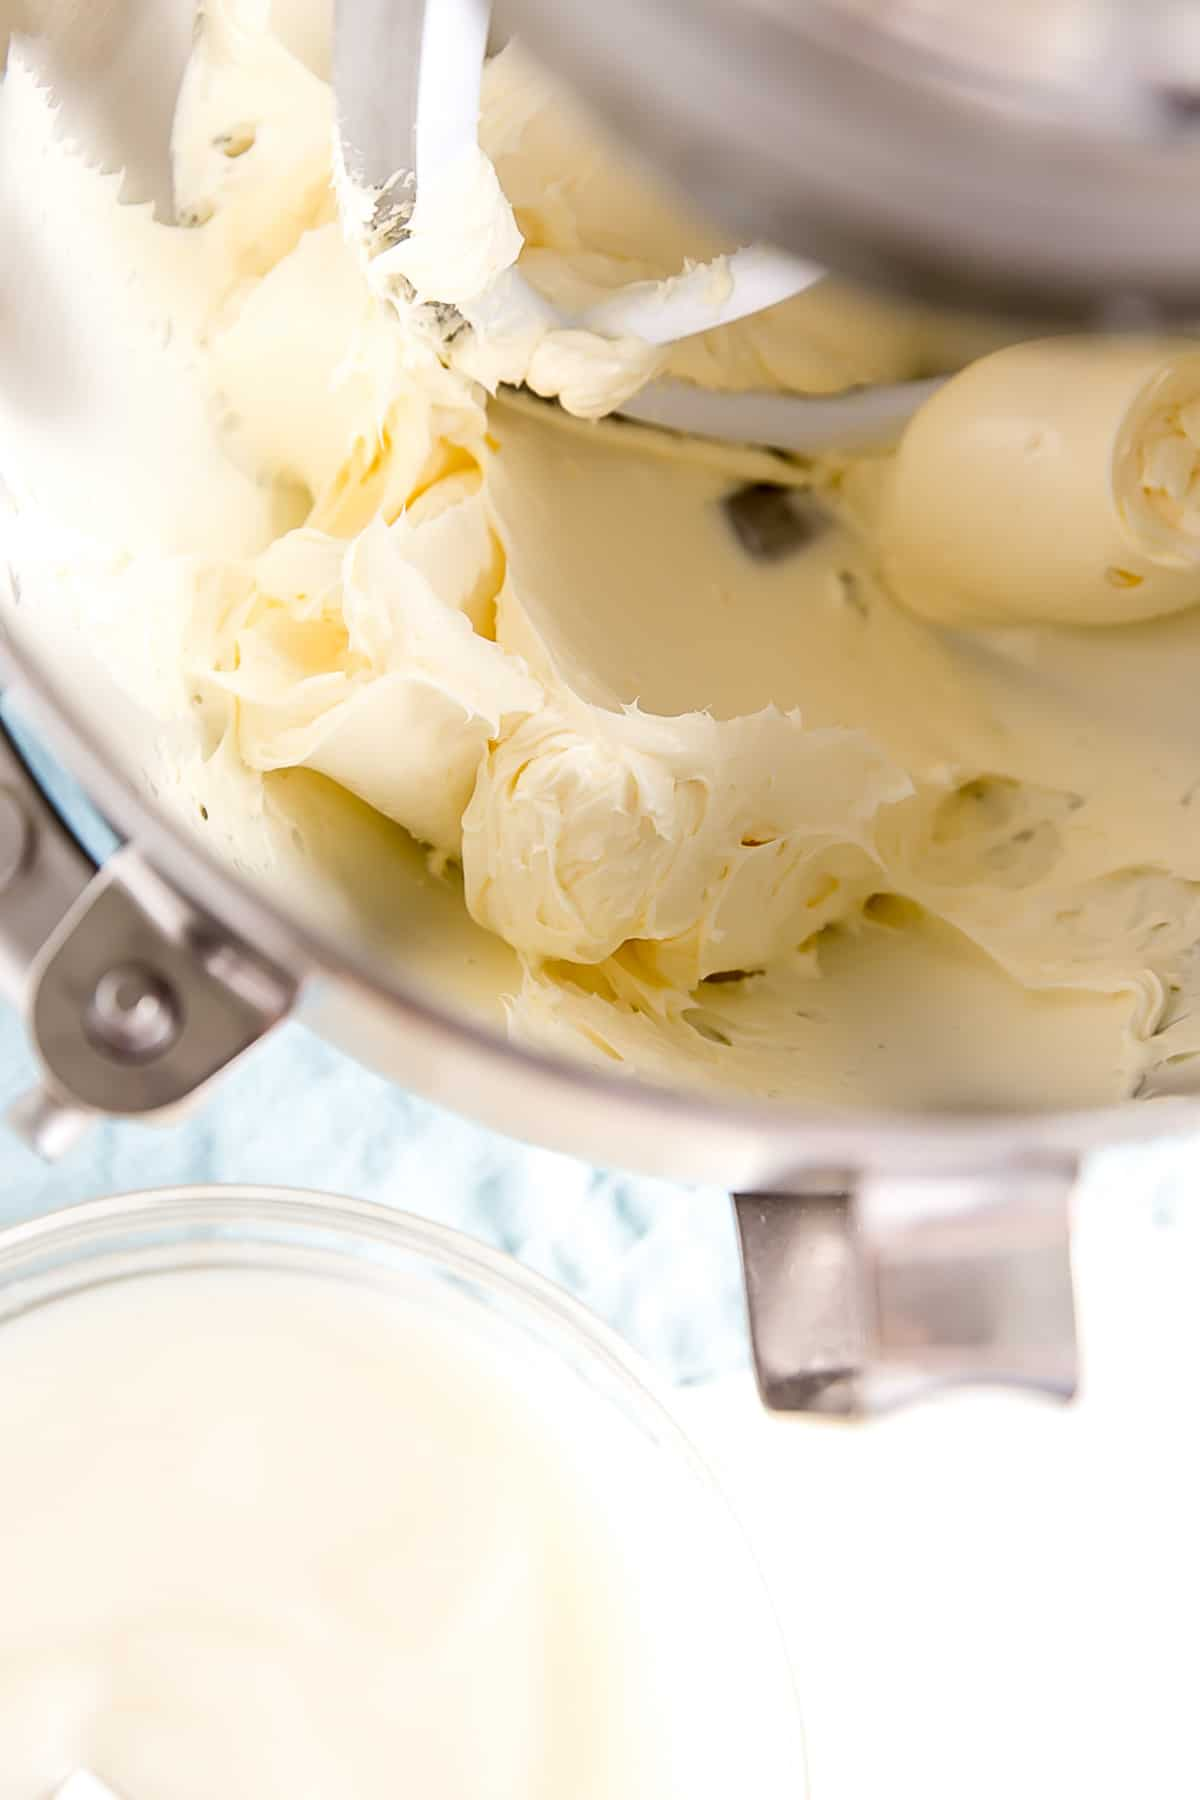 Creamed butter in the bowl of a stand mixer.